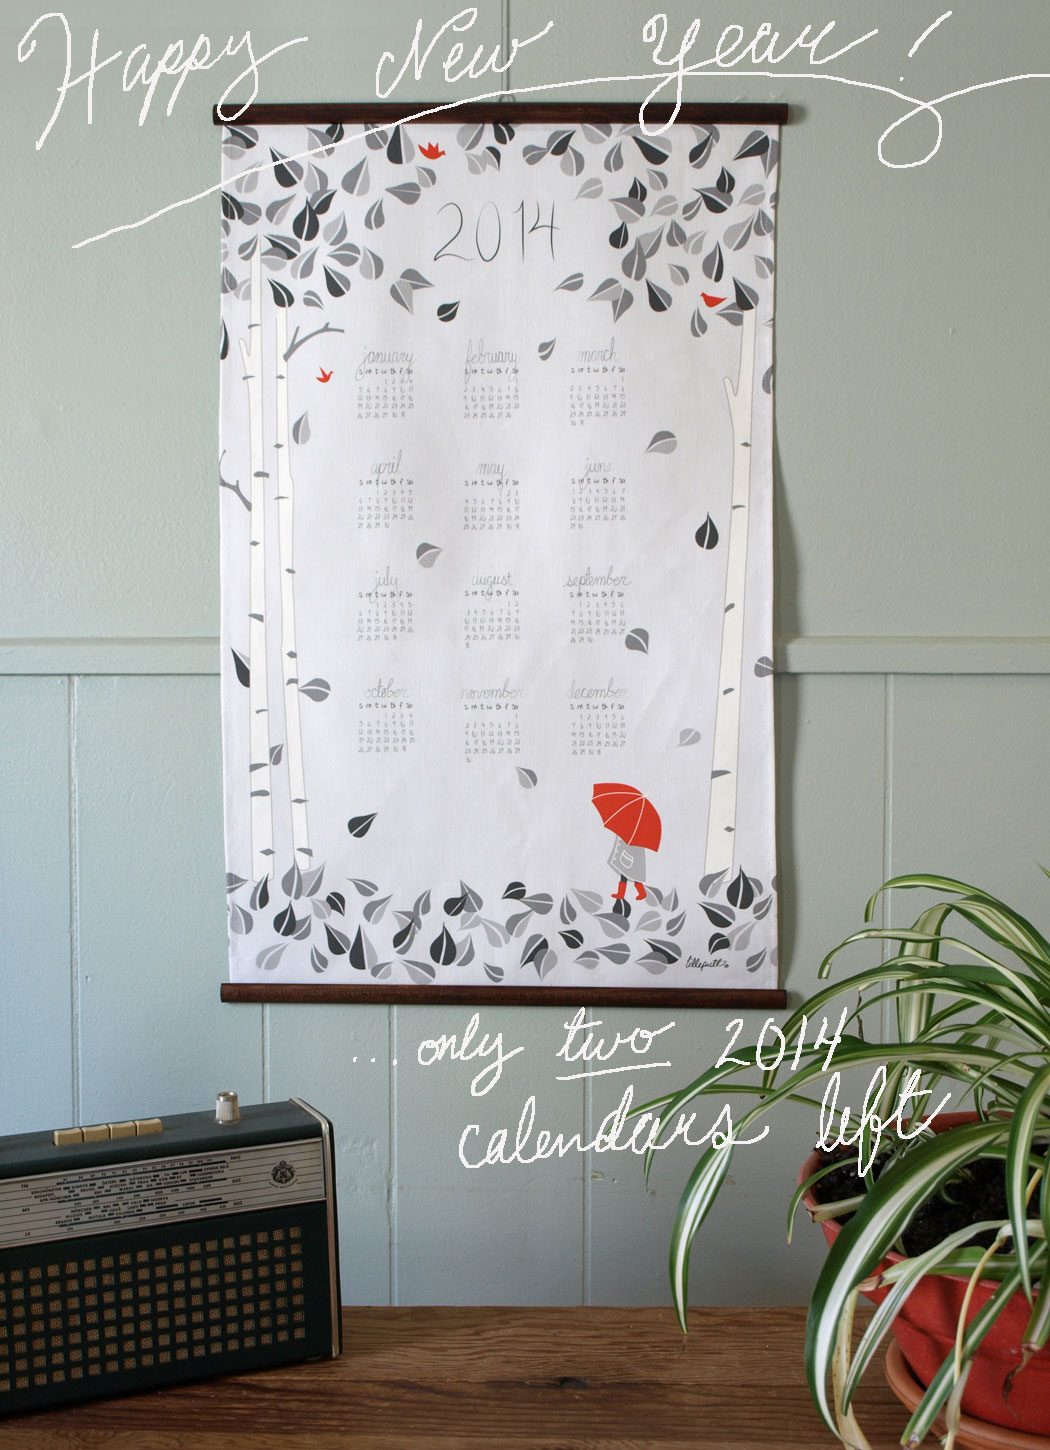 Happy New Year every one! …just a couple of our 2014 birch calendars left, otherwise you'll have to wait till 2015!